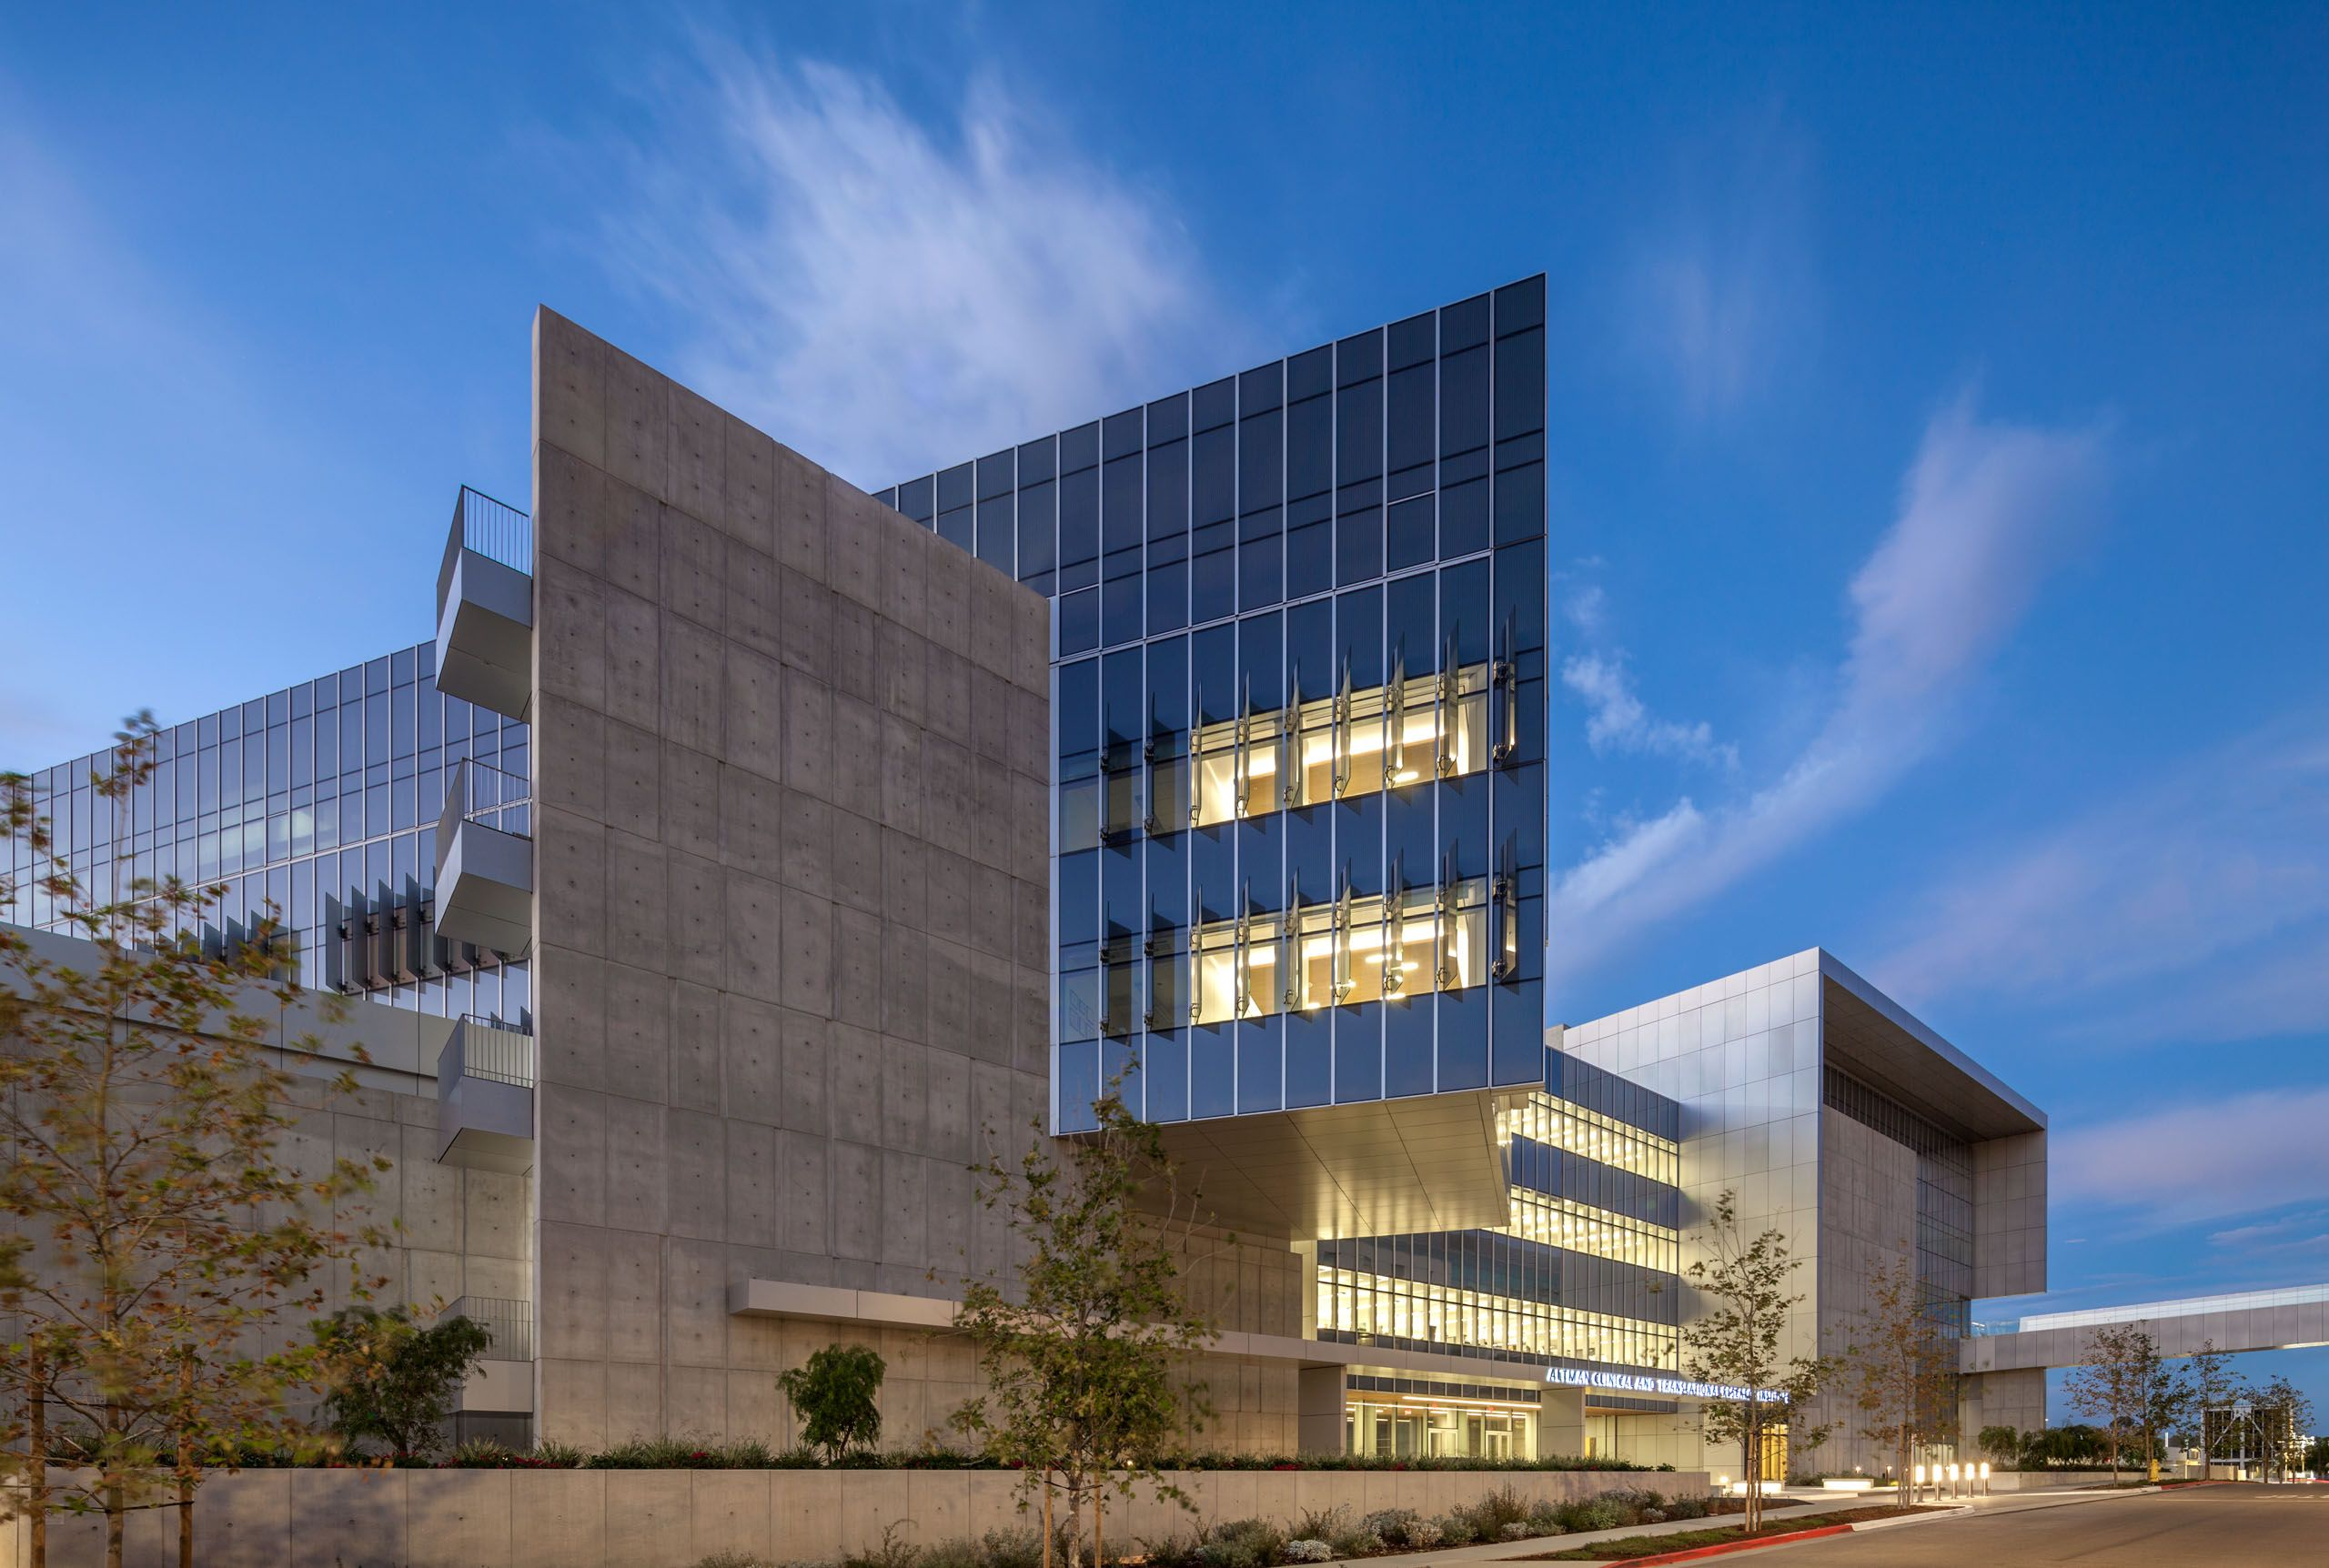 Altman Clinical and Translational Research Institute